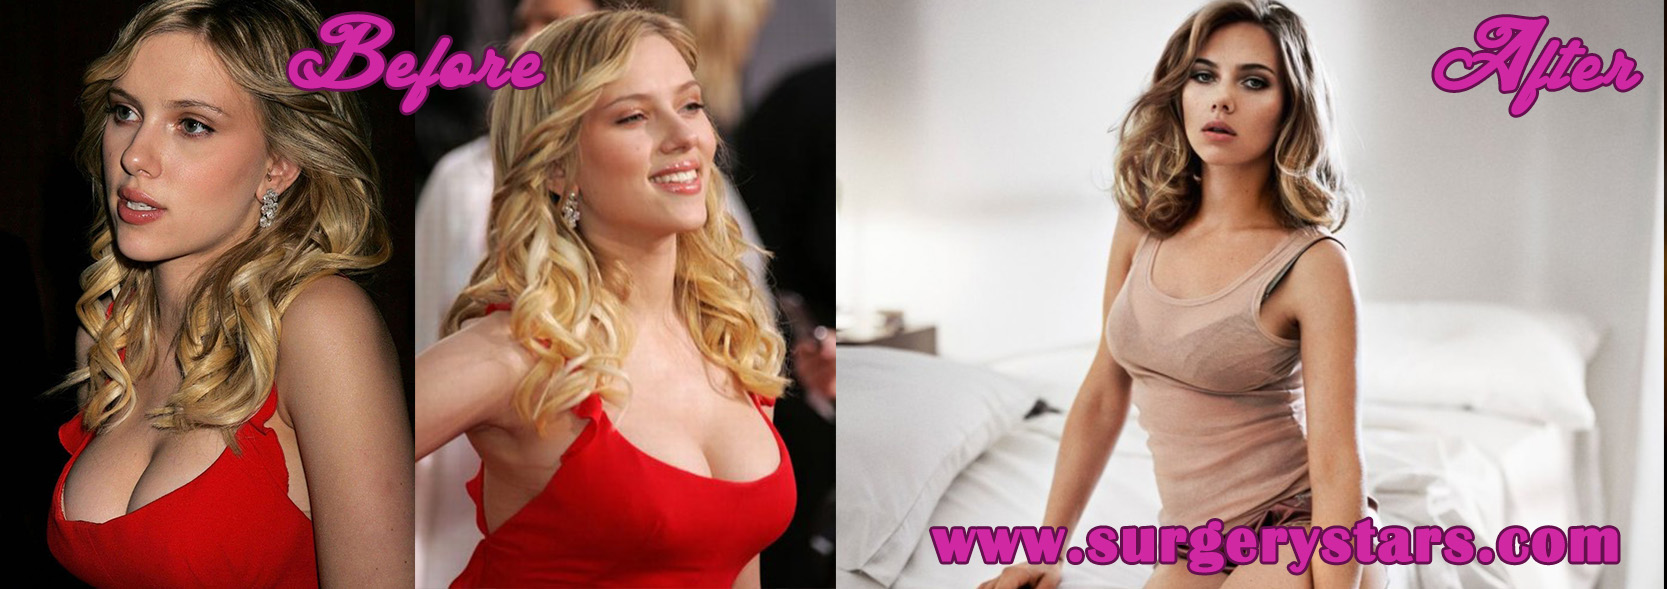 breast reduction before and after pictures  613264